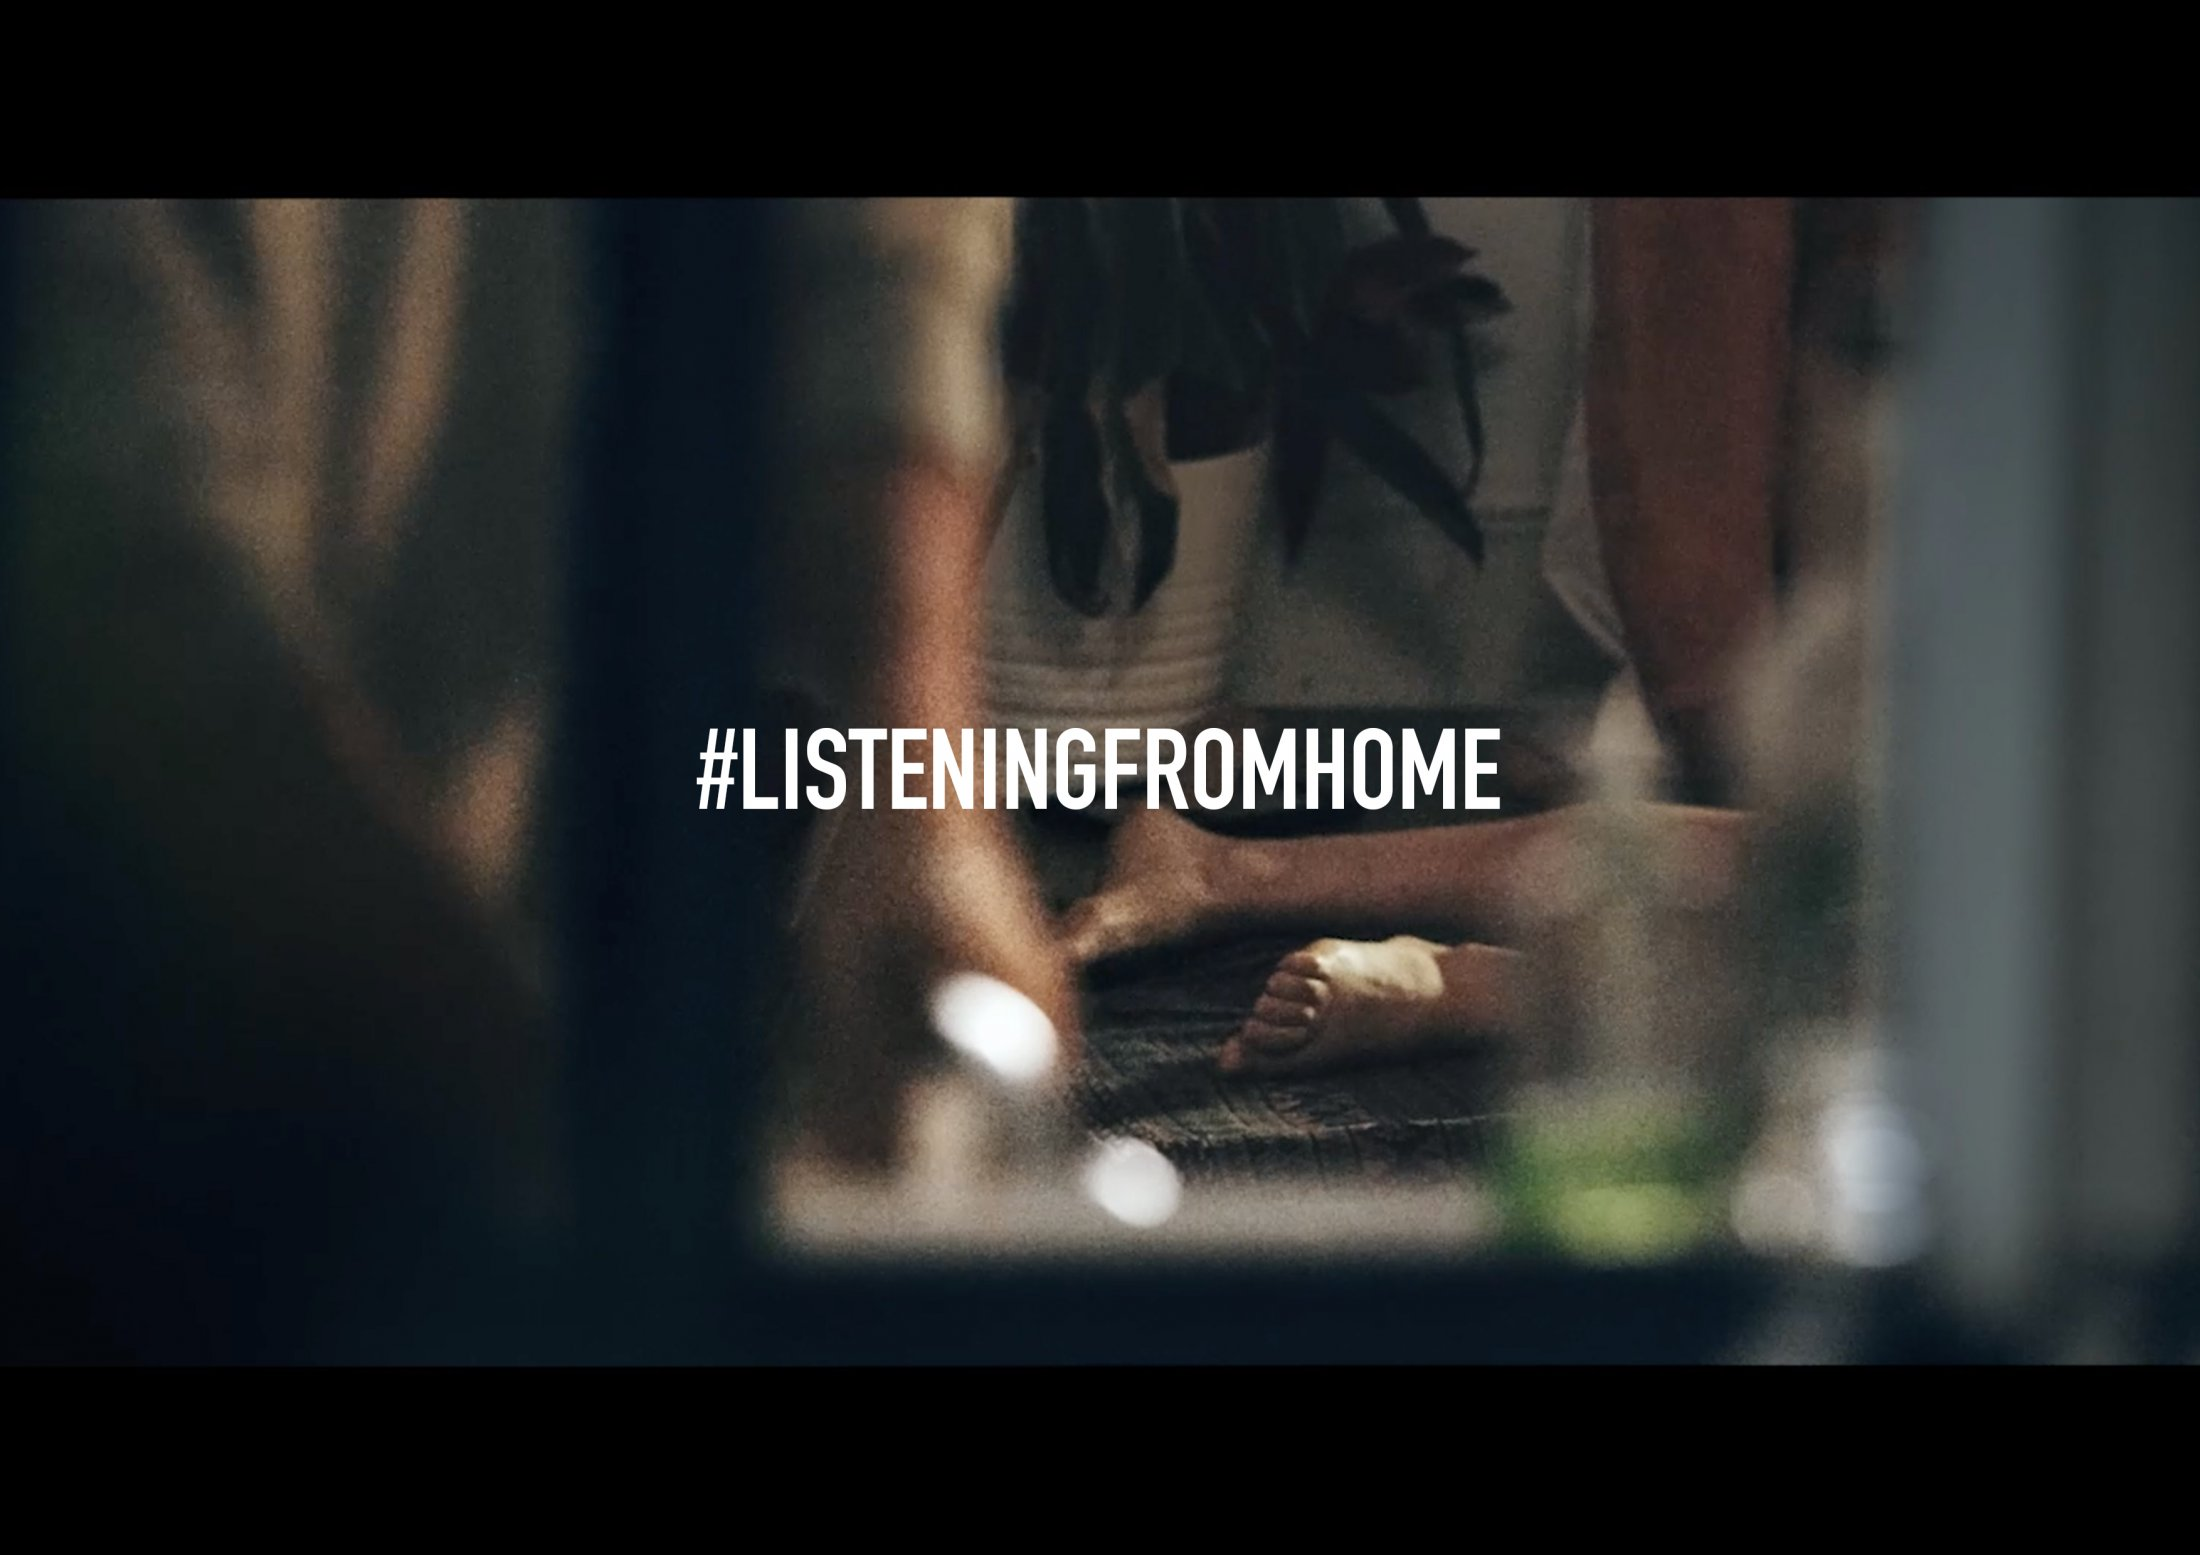 Thumbnail for Listening from home